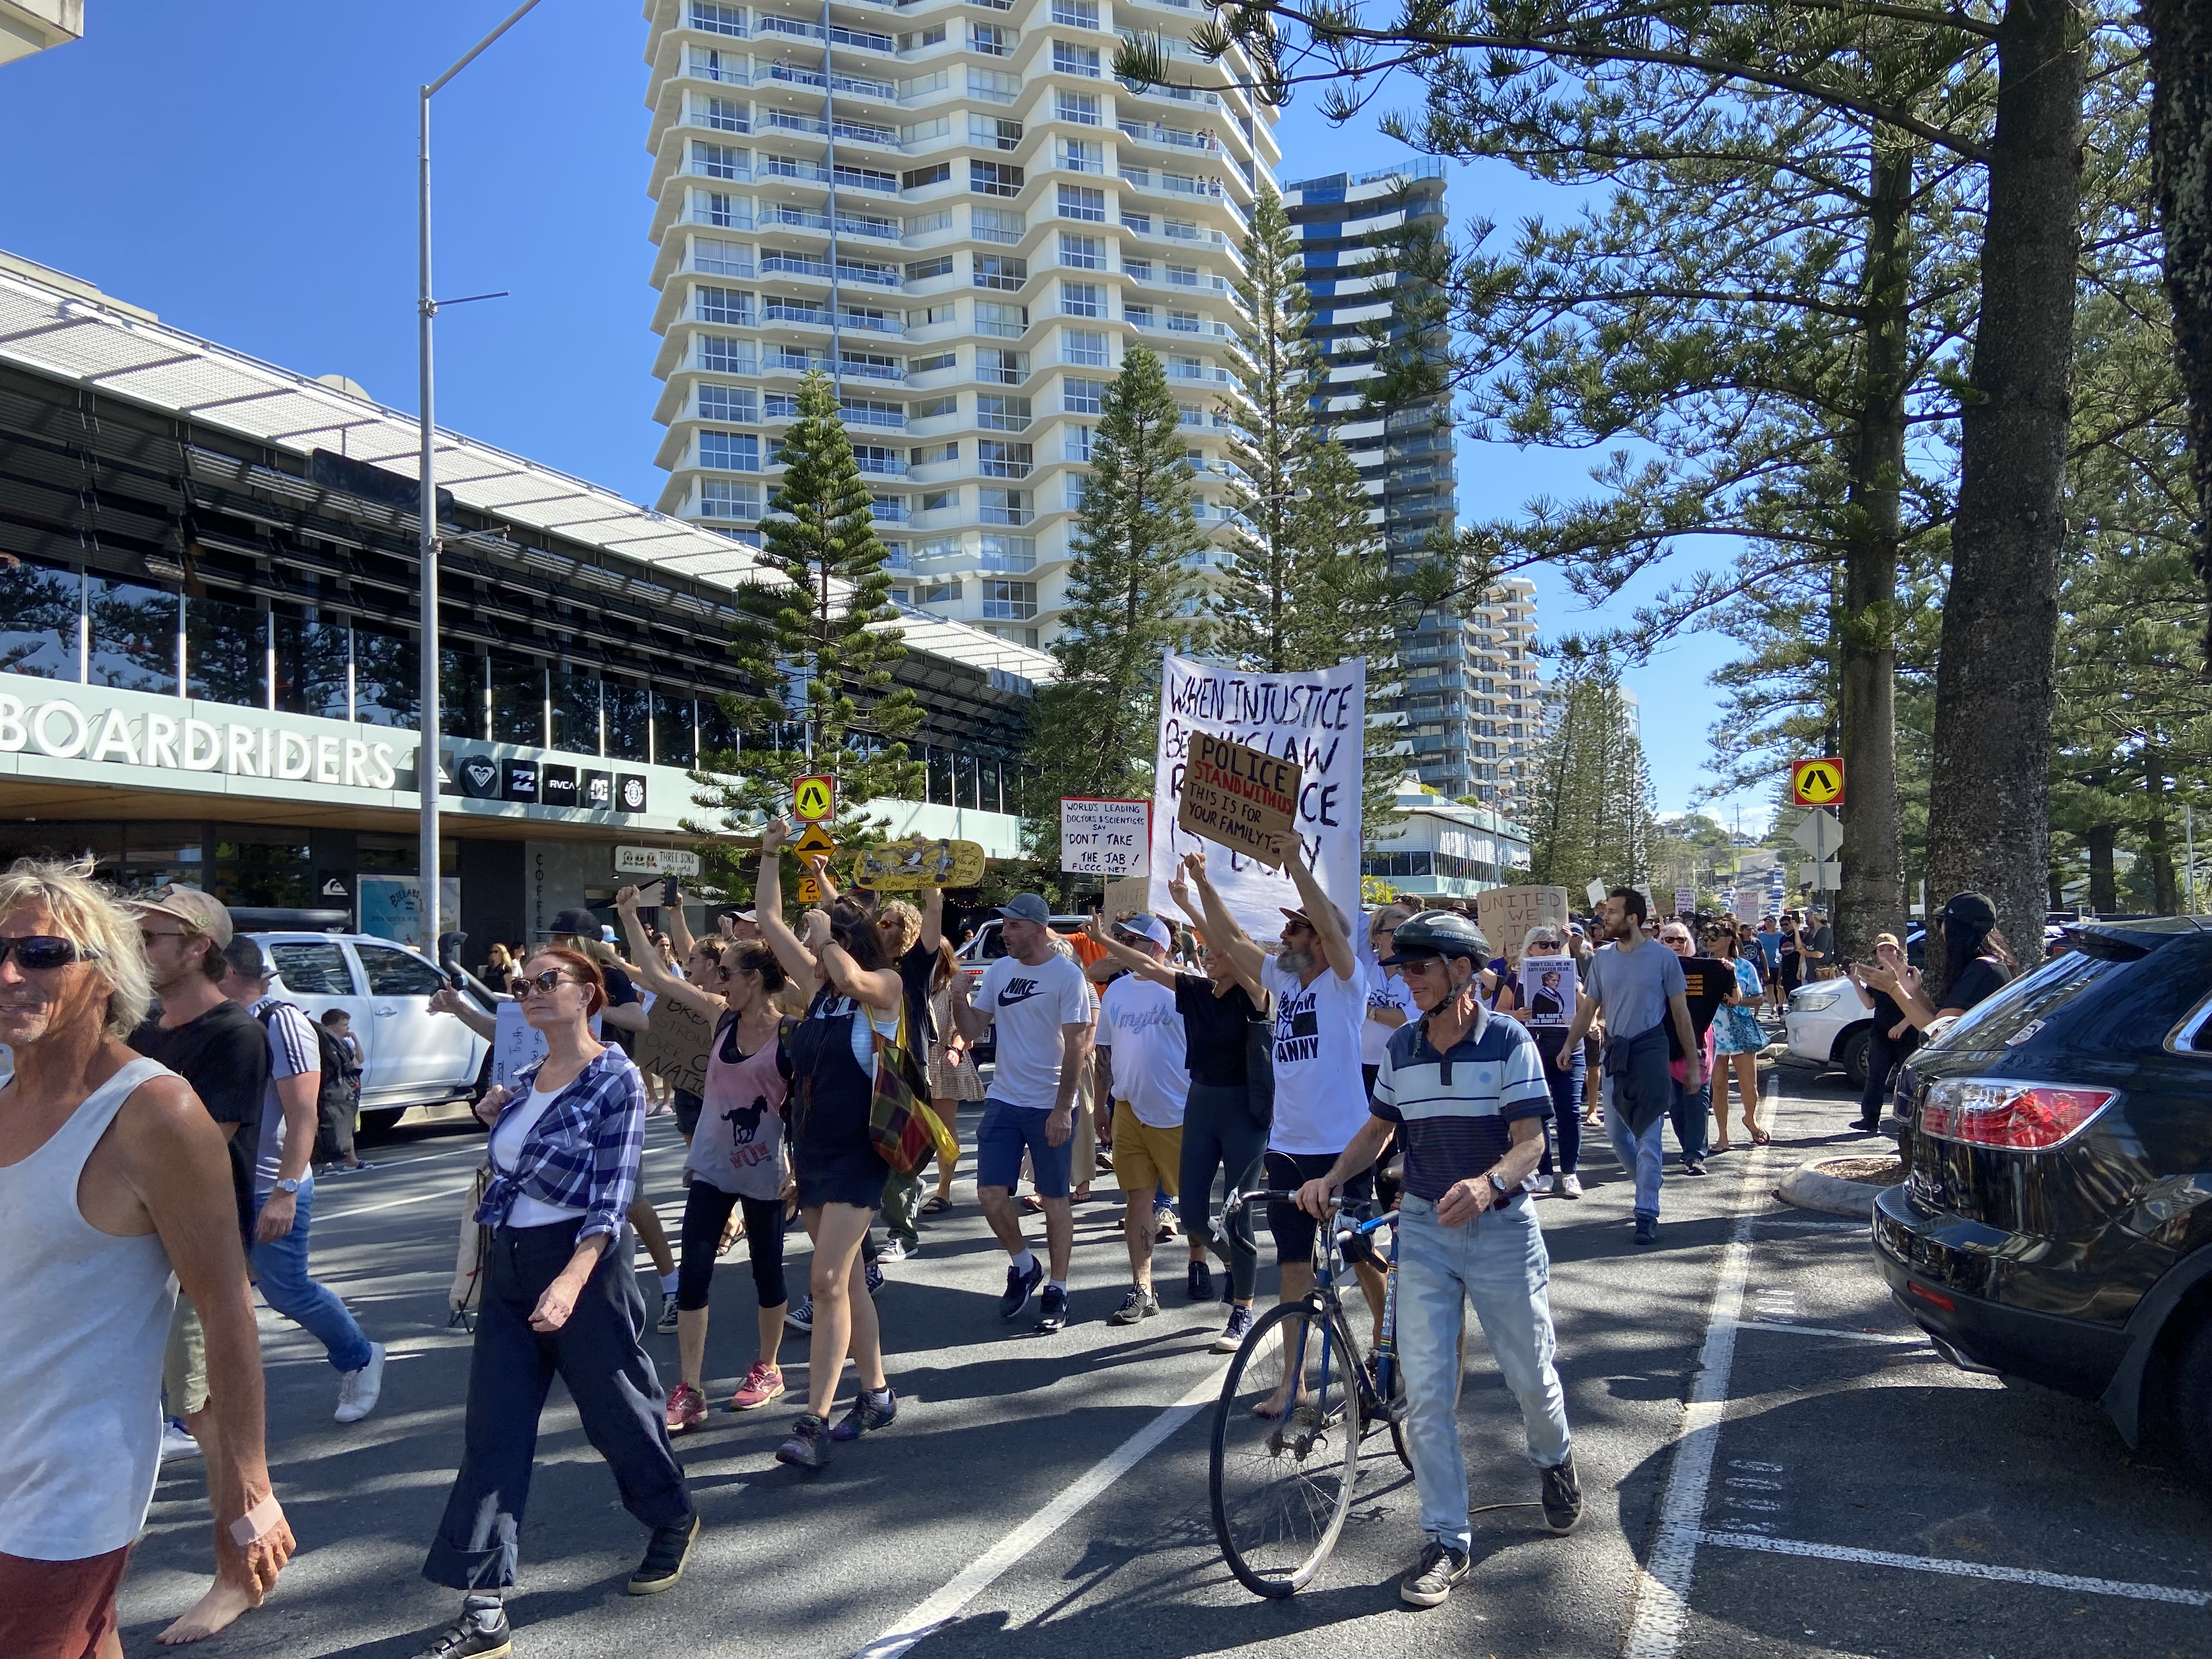 People gathered on Coolangatta Esplanade protesting an end to vaccinations and lockdown.